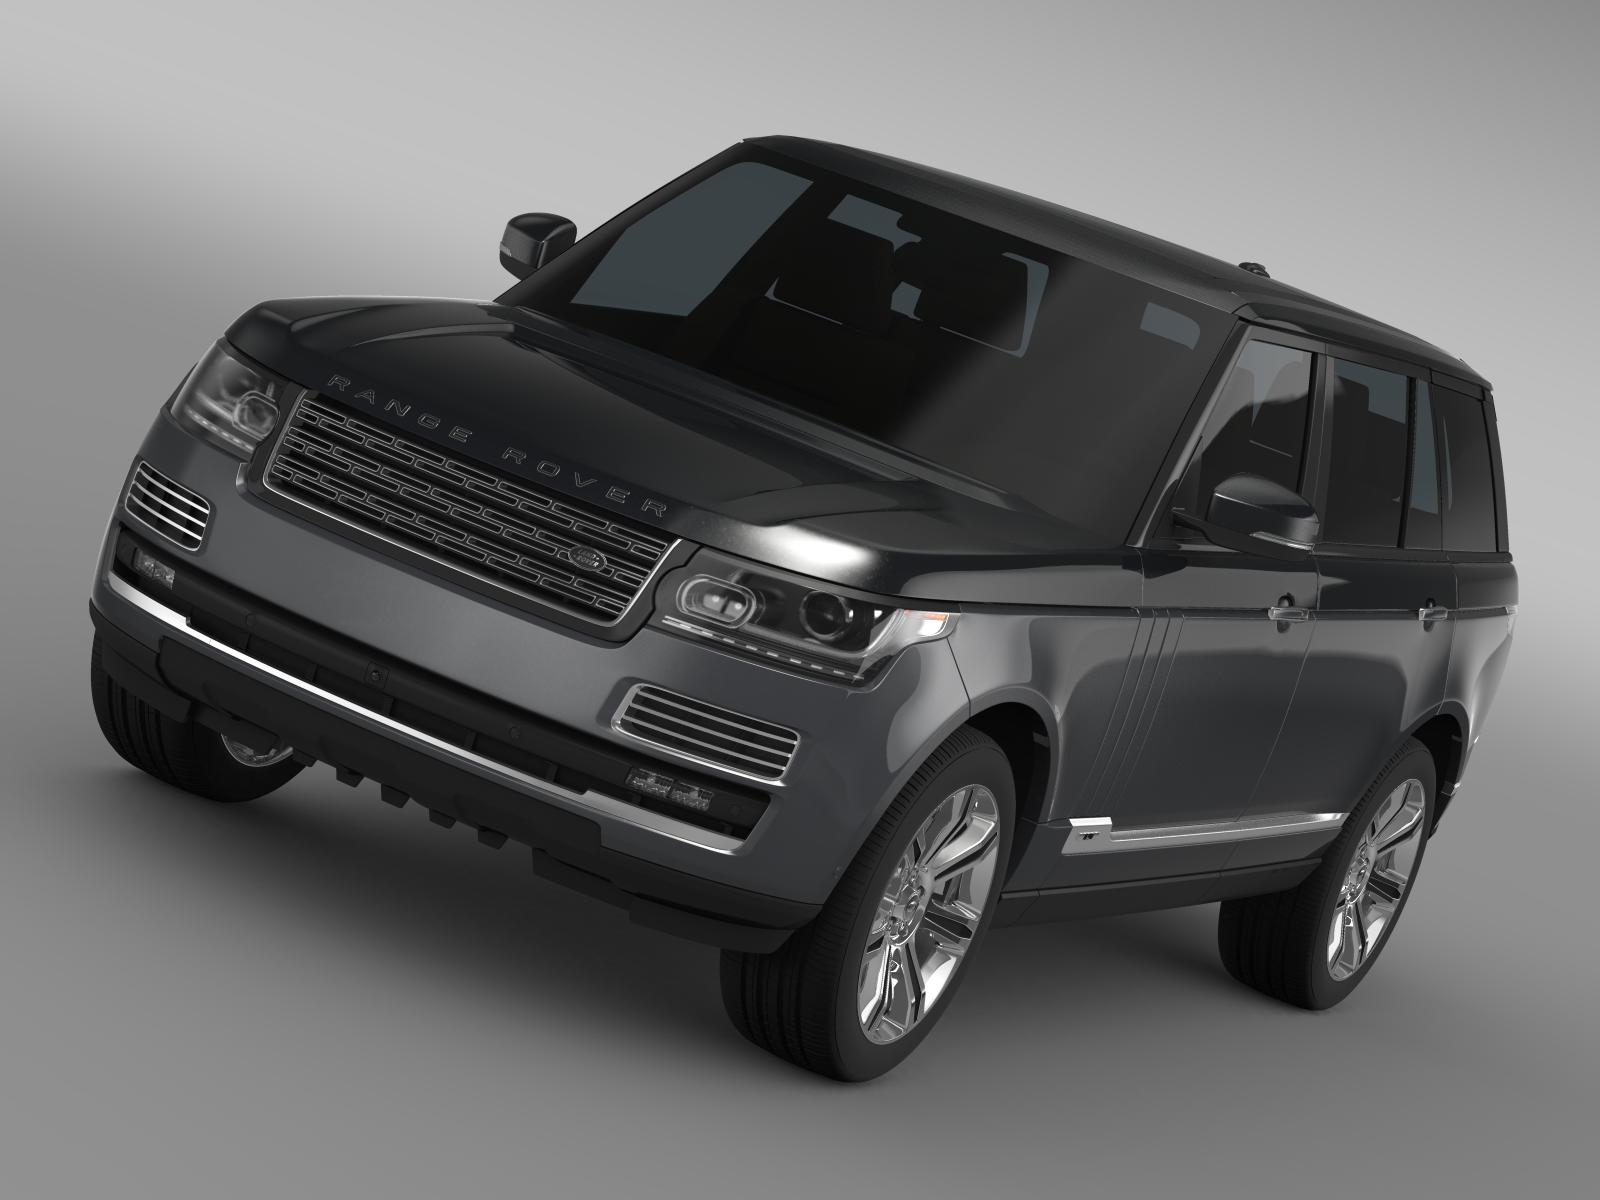 range rover svautobiography l405 2016 3d model. Black Bedroom Furniture Sets. Home Design Ideas